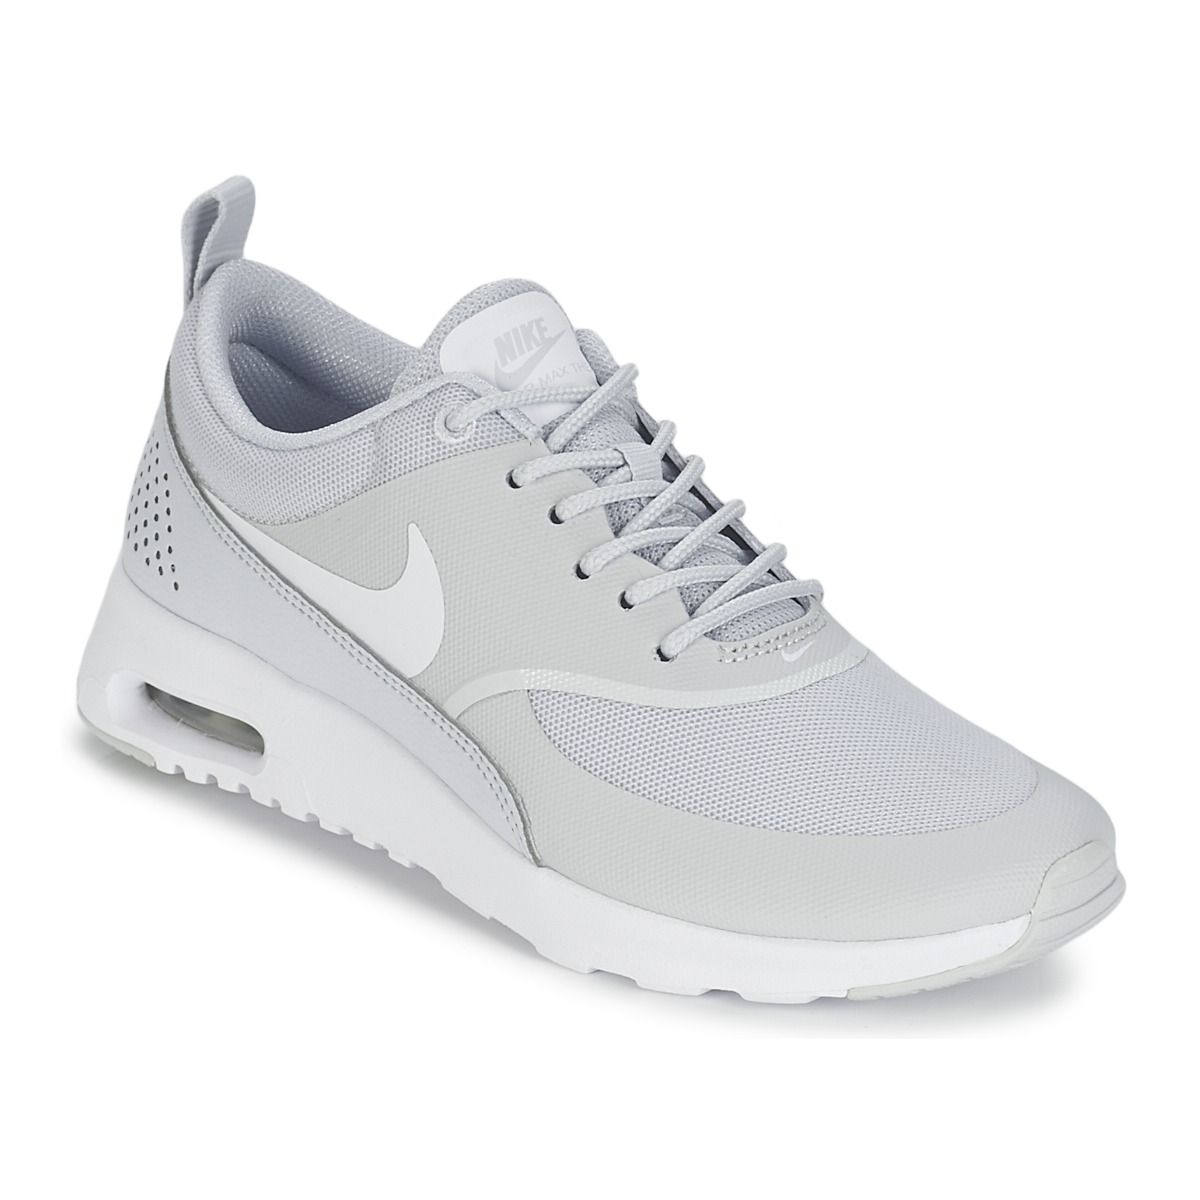 wholesale dealer d390f 27724 Baskets basses Nike AIR MAX THEA W Gris prix promo Baskets Femme Spartoo  119.00 €